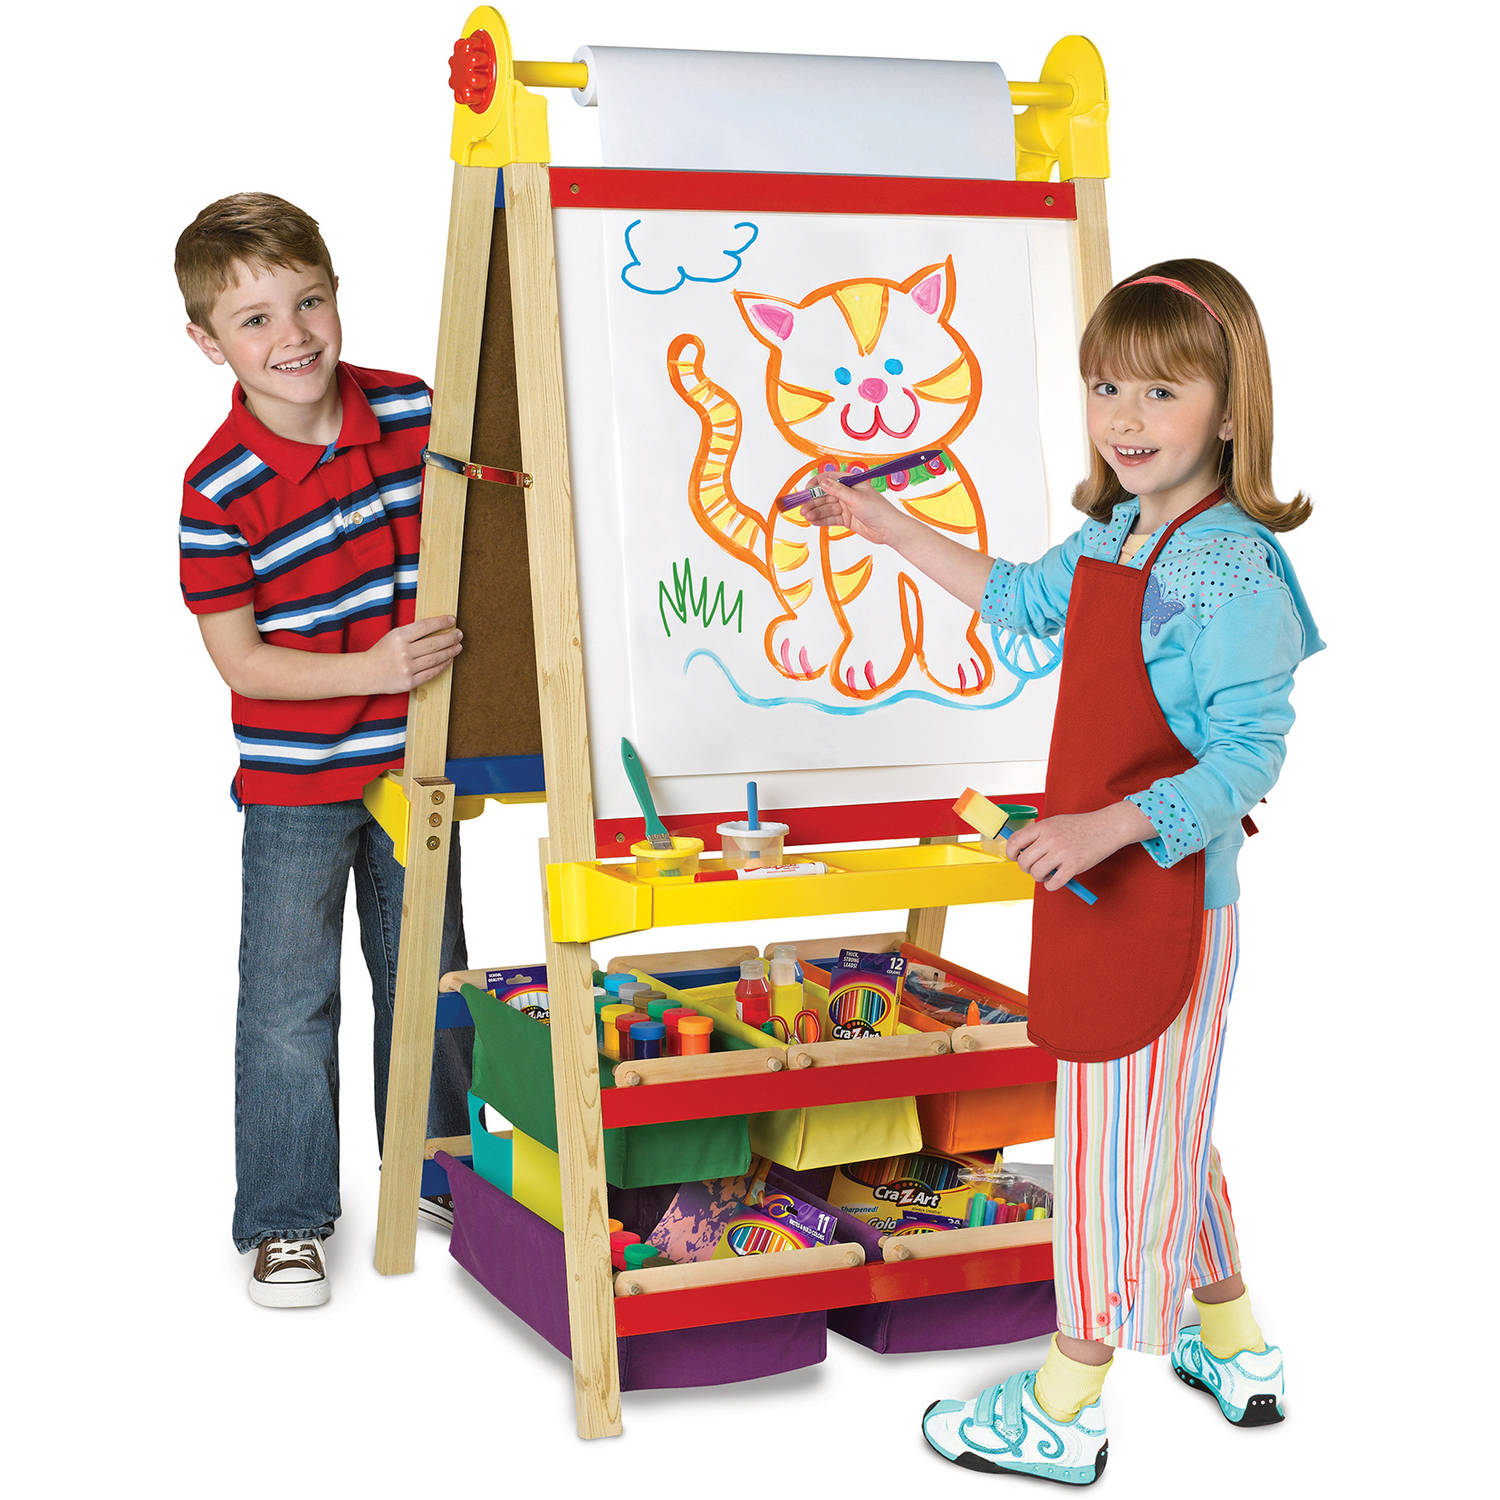 Cra-Z-Art 4-in-1 Wood Standing Ultimate Art Easel by CRA-Z-ART